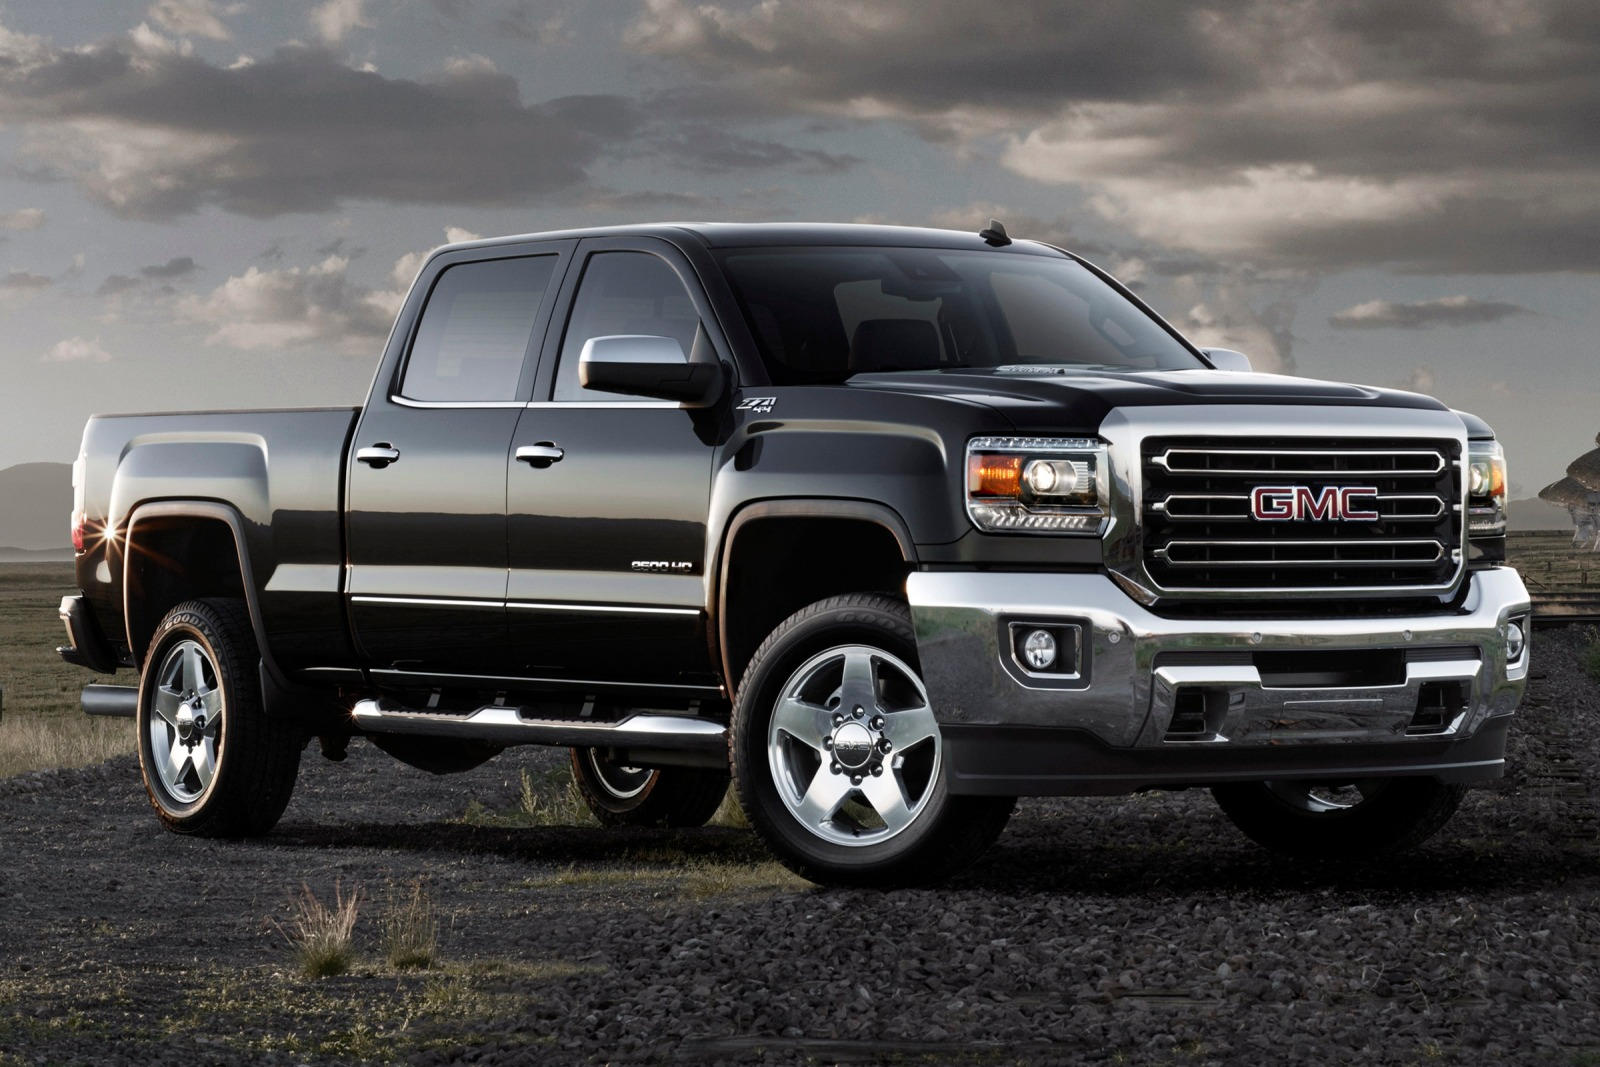 2018 Gmc Sierra 2500hd Review Trims Specs Price New Interior Features Exterior Design And Specifications Carbuzz